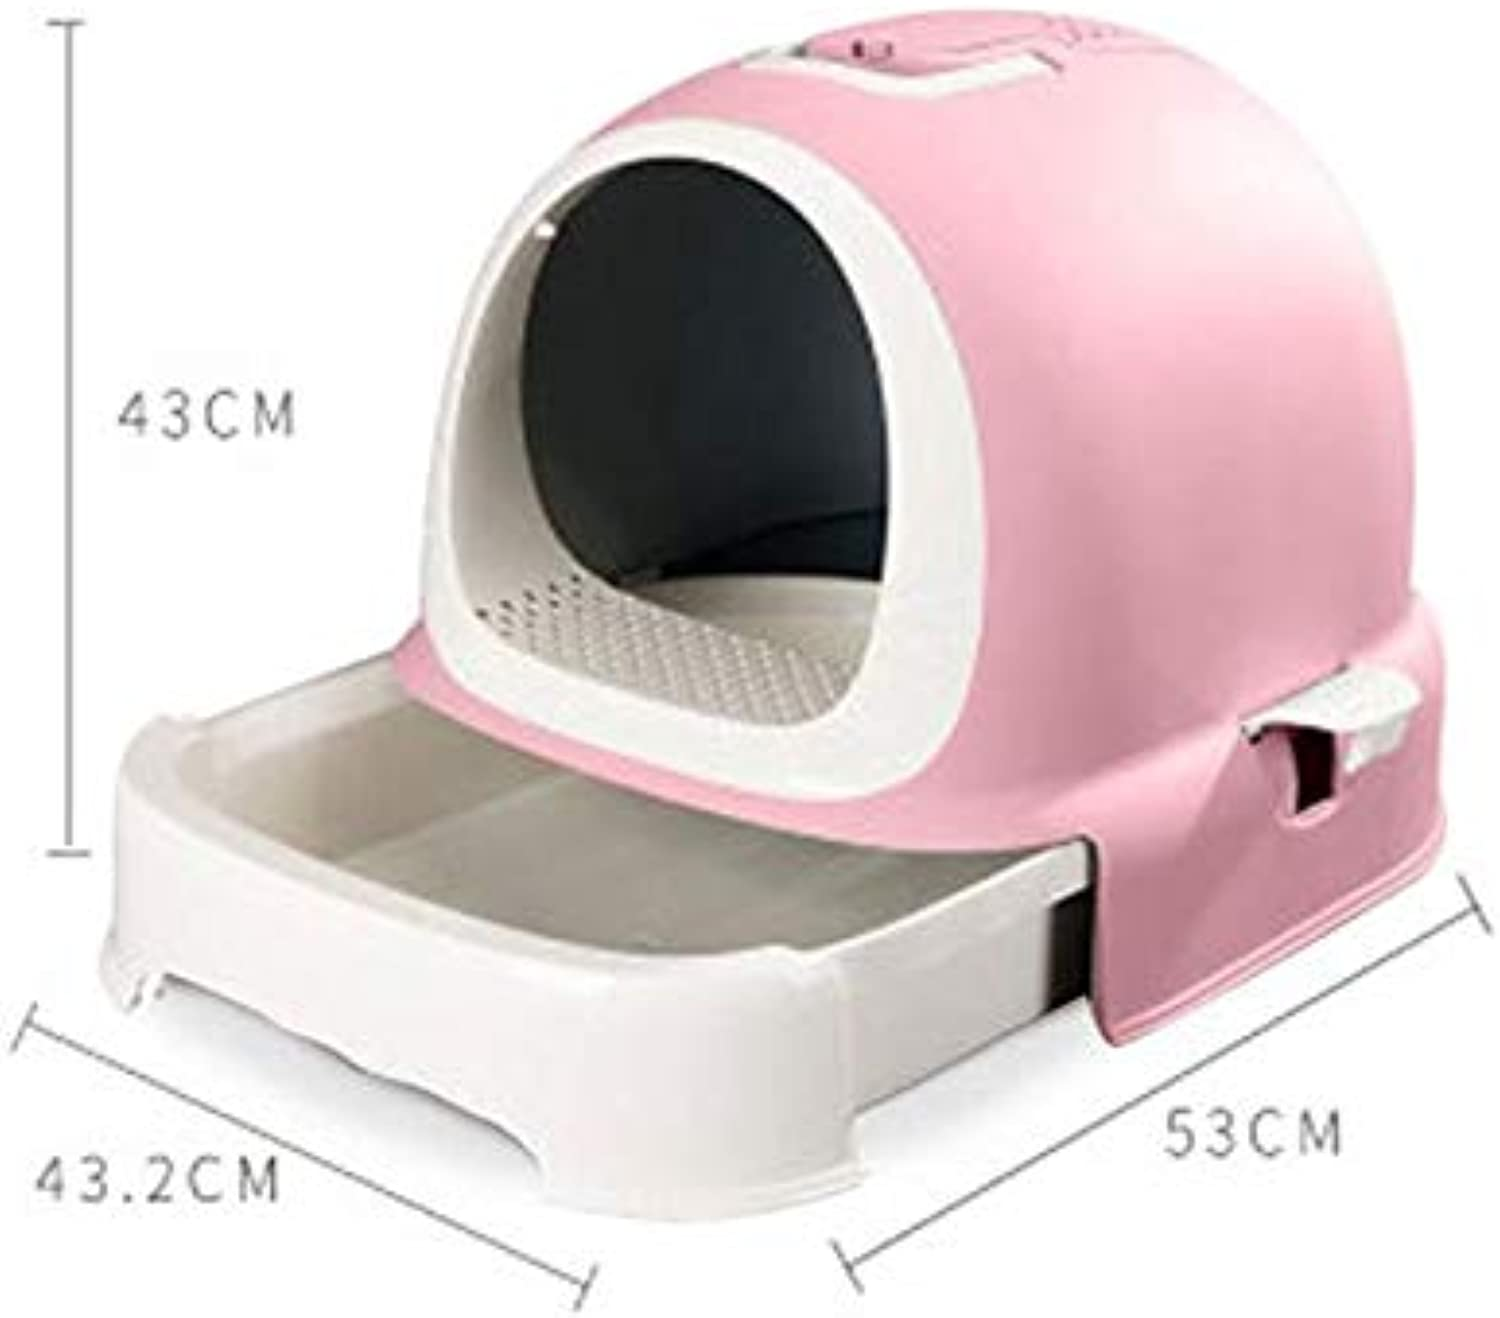 North cool Fully Enclosed Large Cat Litter Pot Deodorant Double Toilet Antisplash Extra Large Cat Sand Pot Cat Full Set (color   Pink)